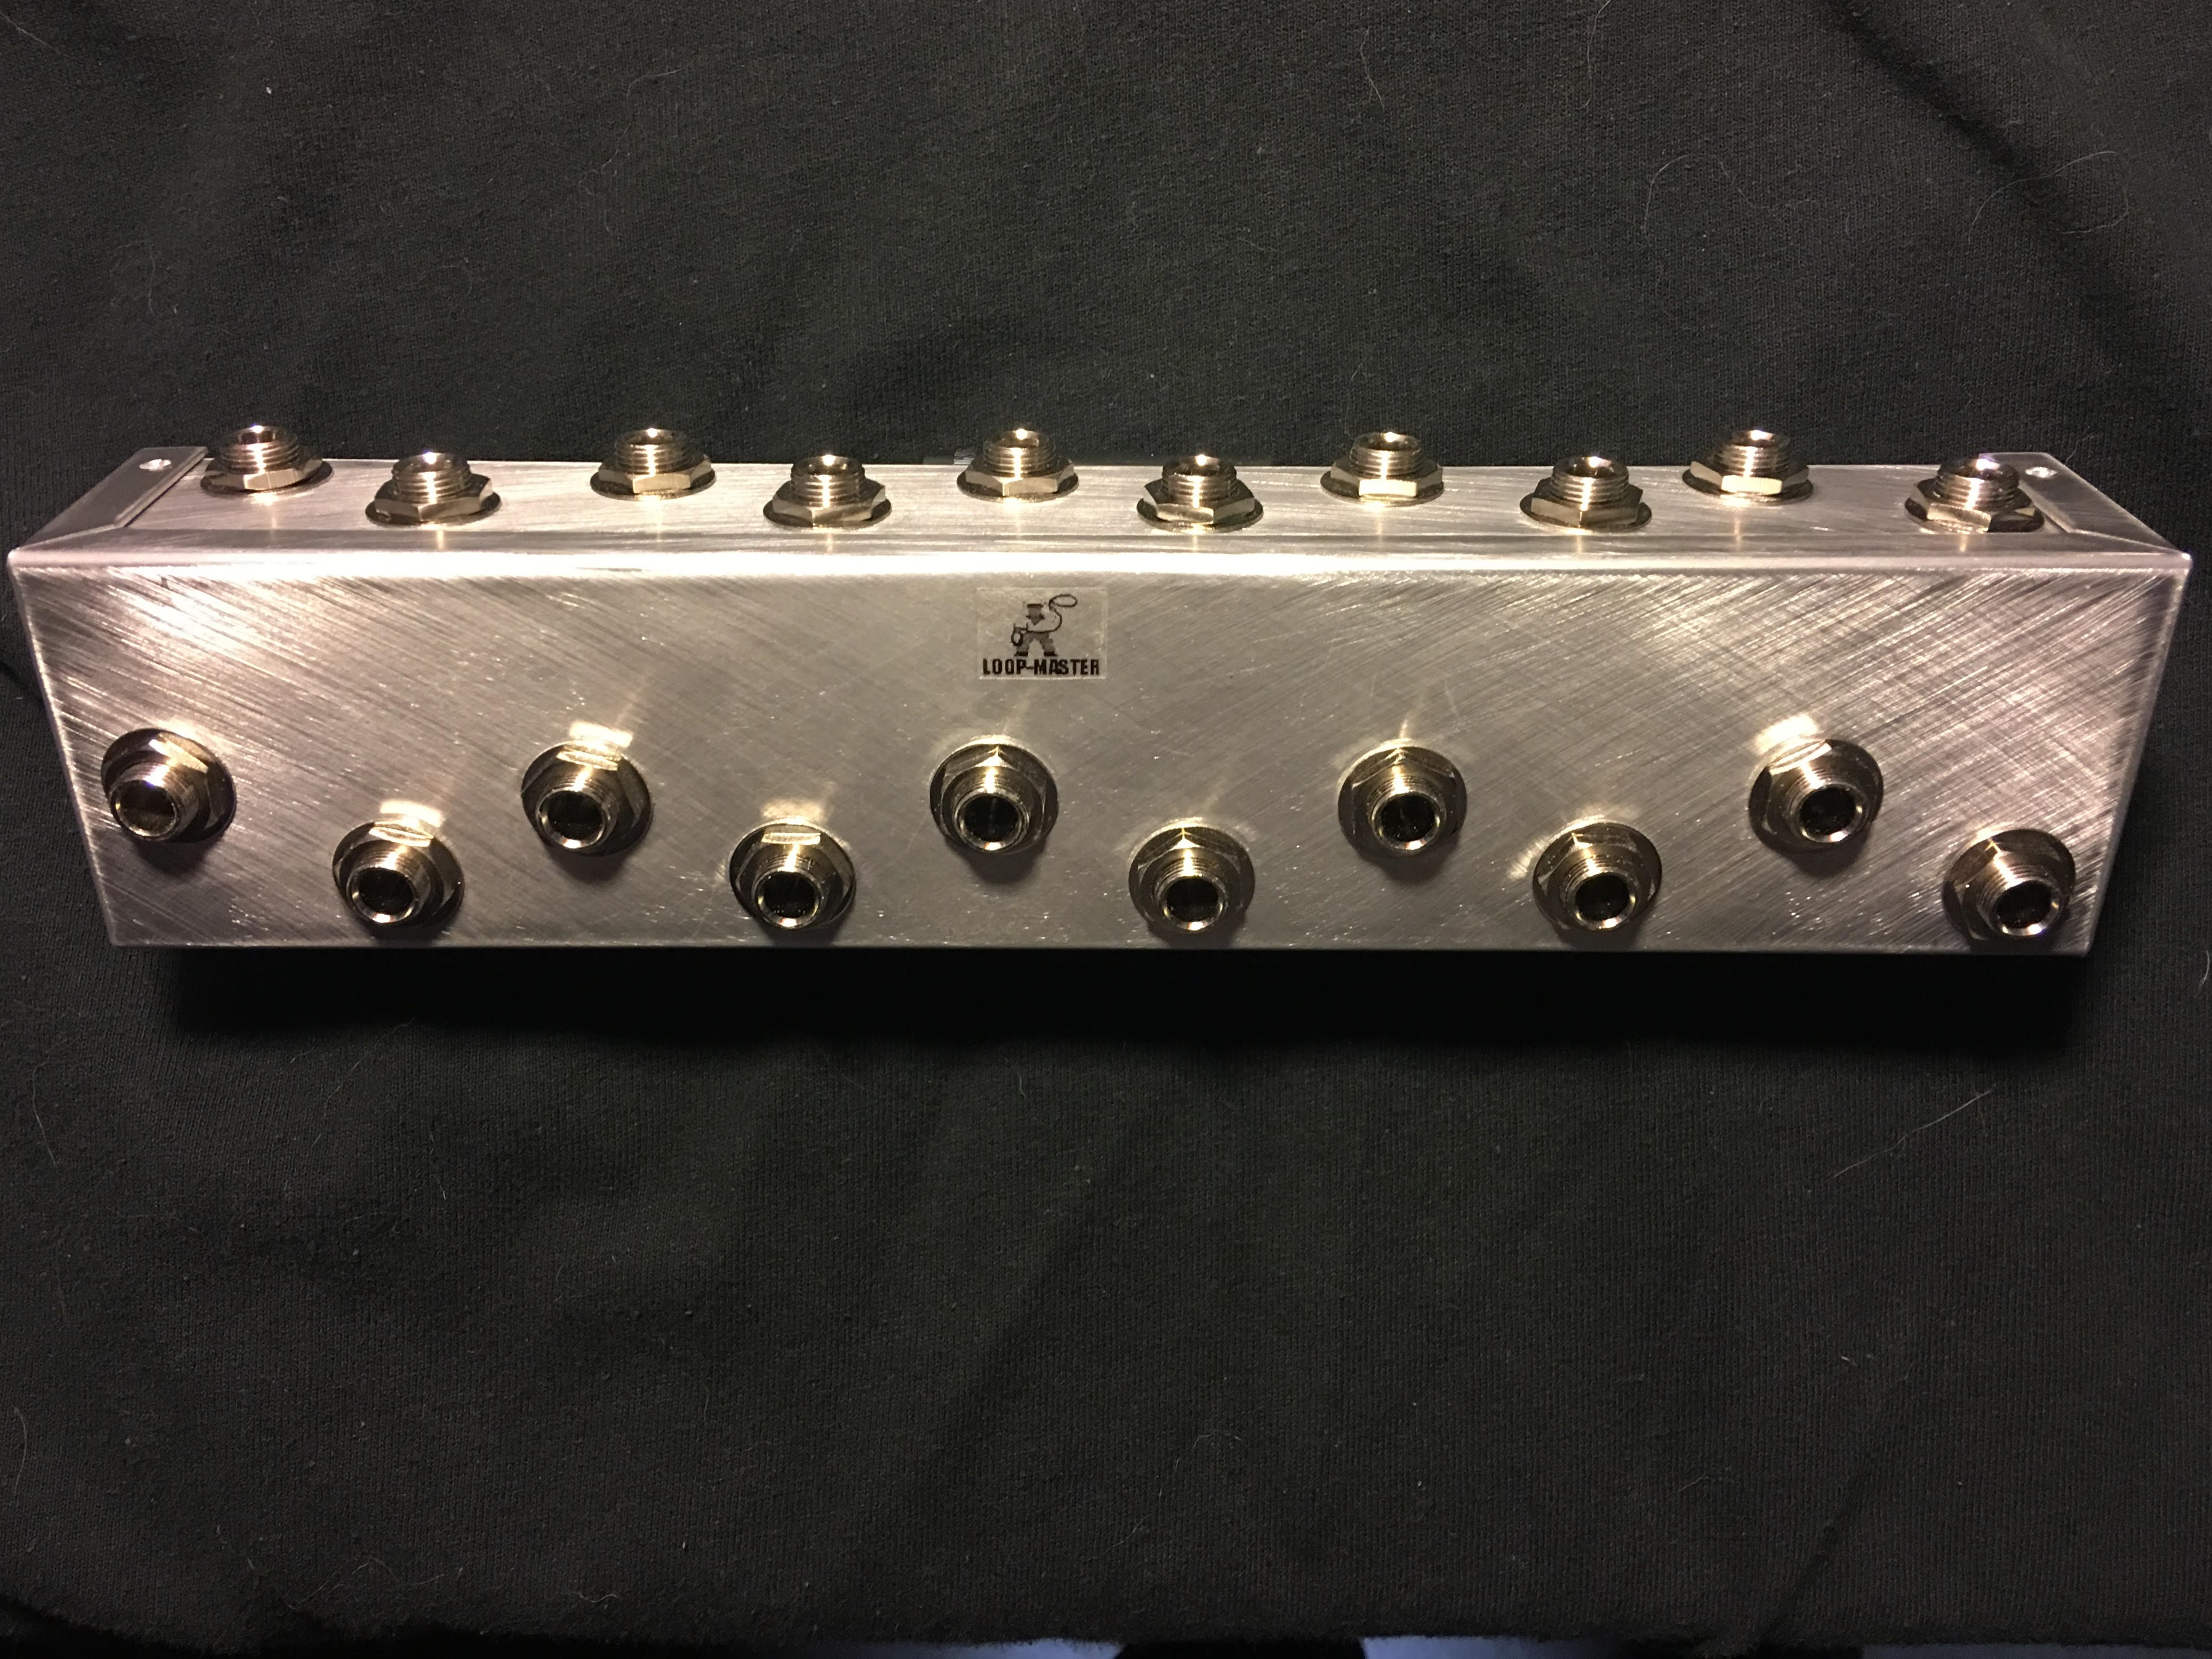 10-Way Pedalboard Patch Bay